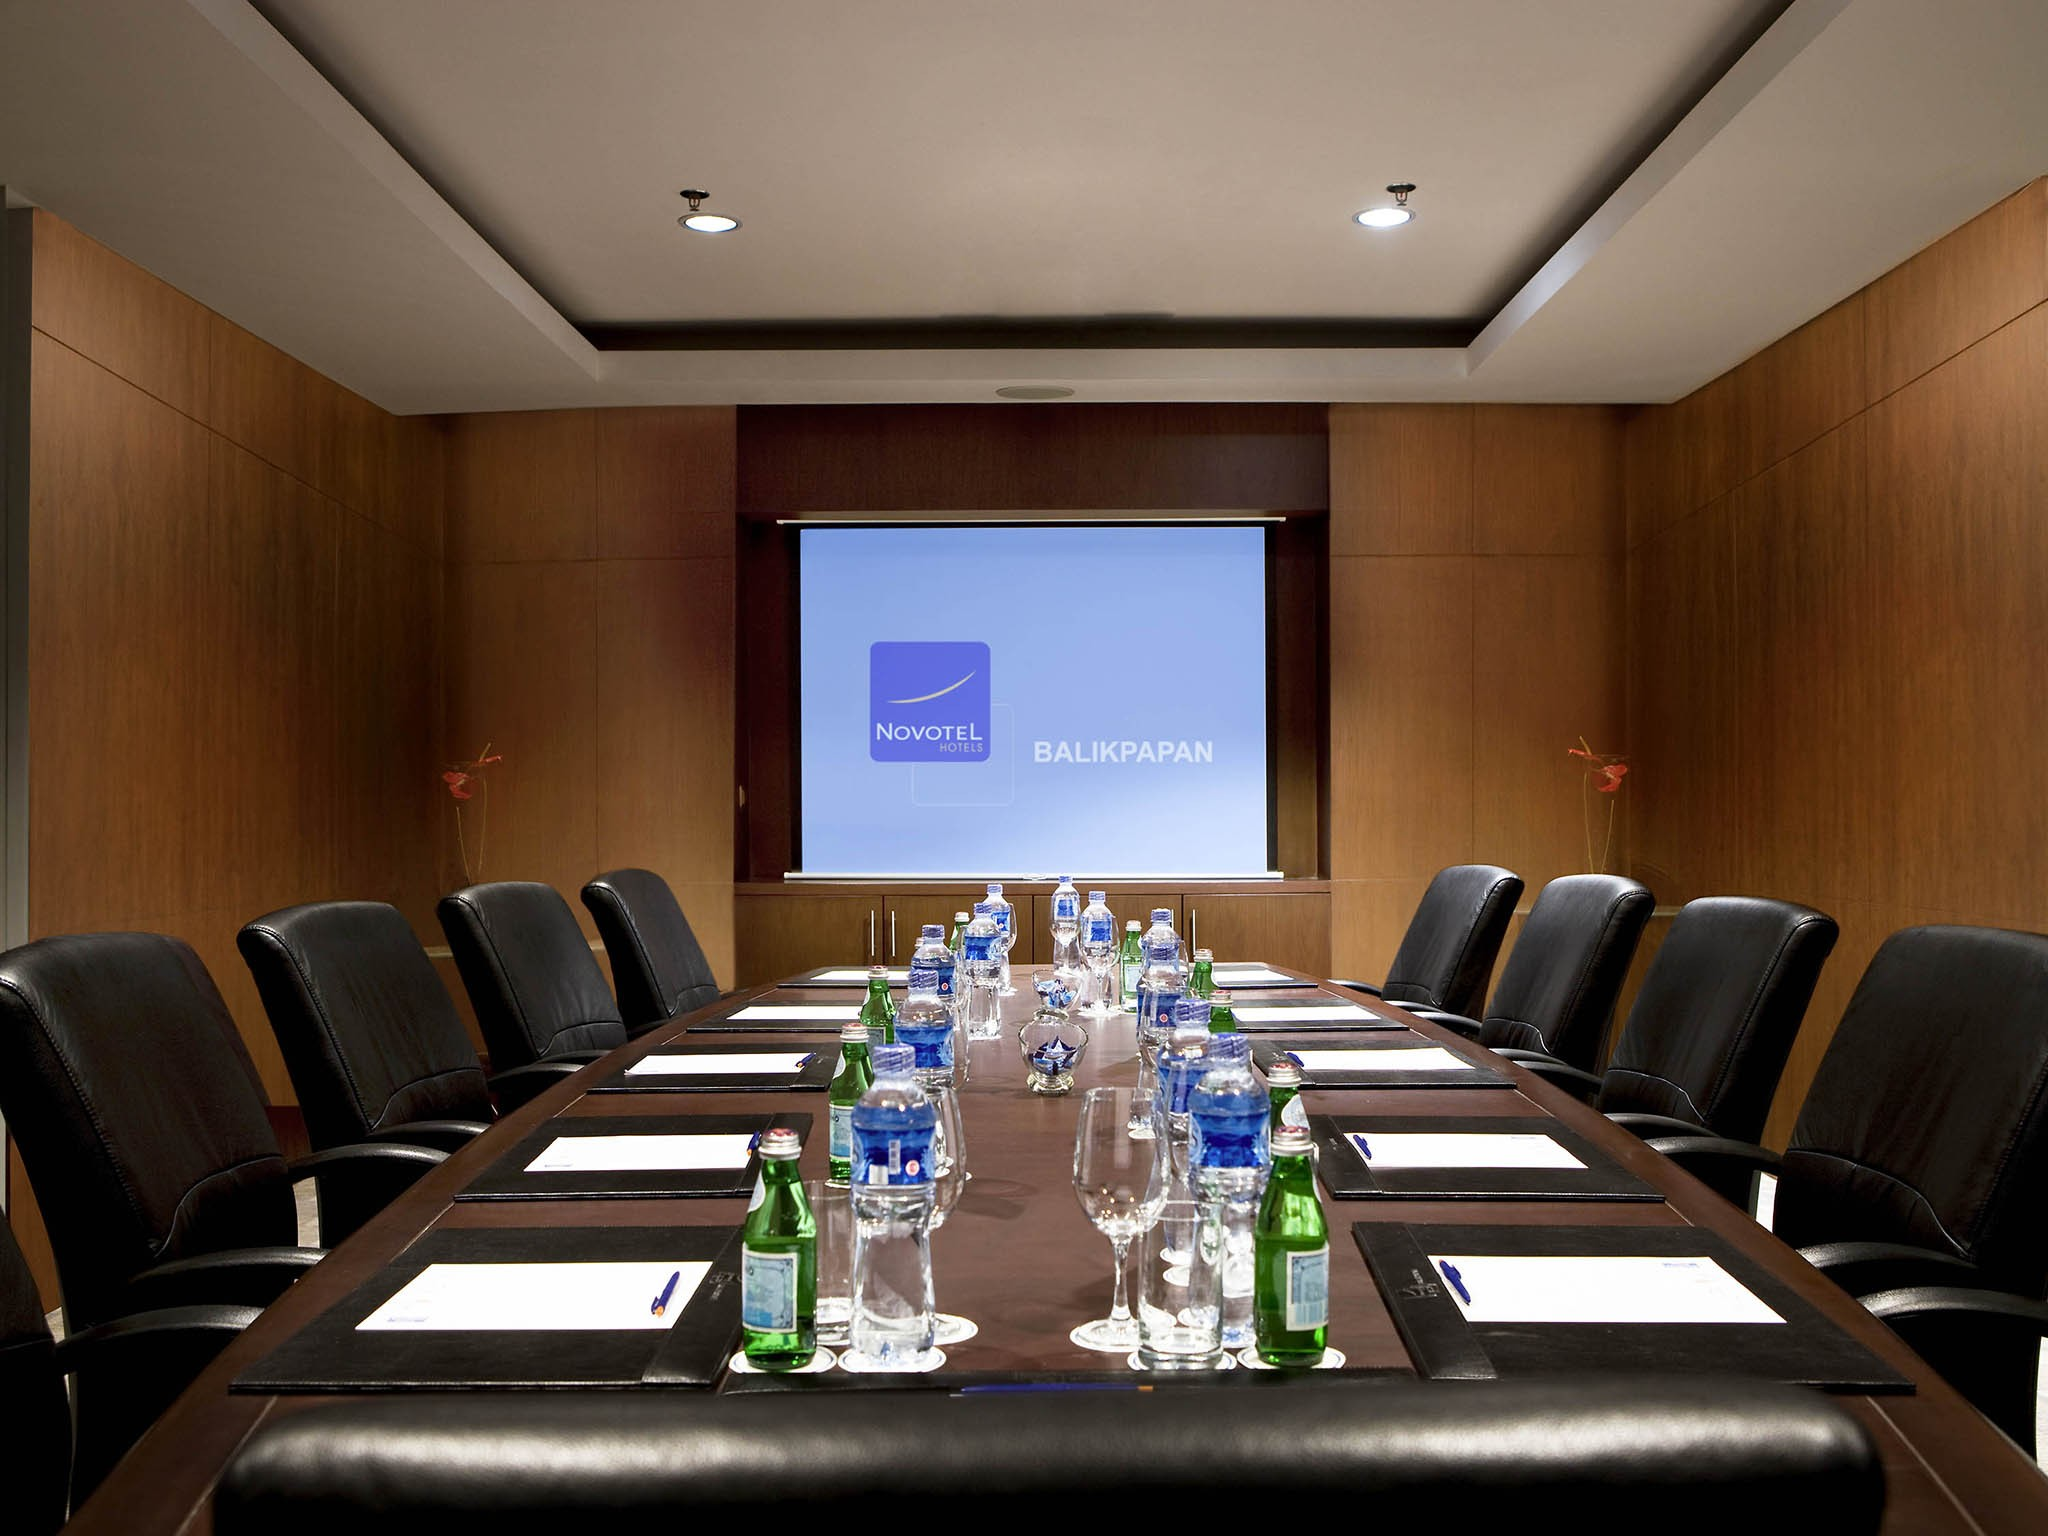 Novotel Balikpapan Meeting Room